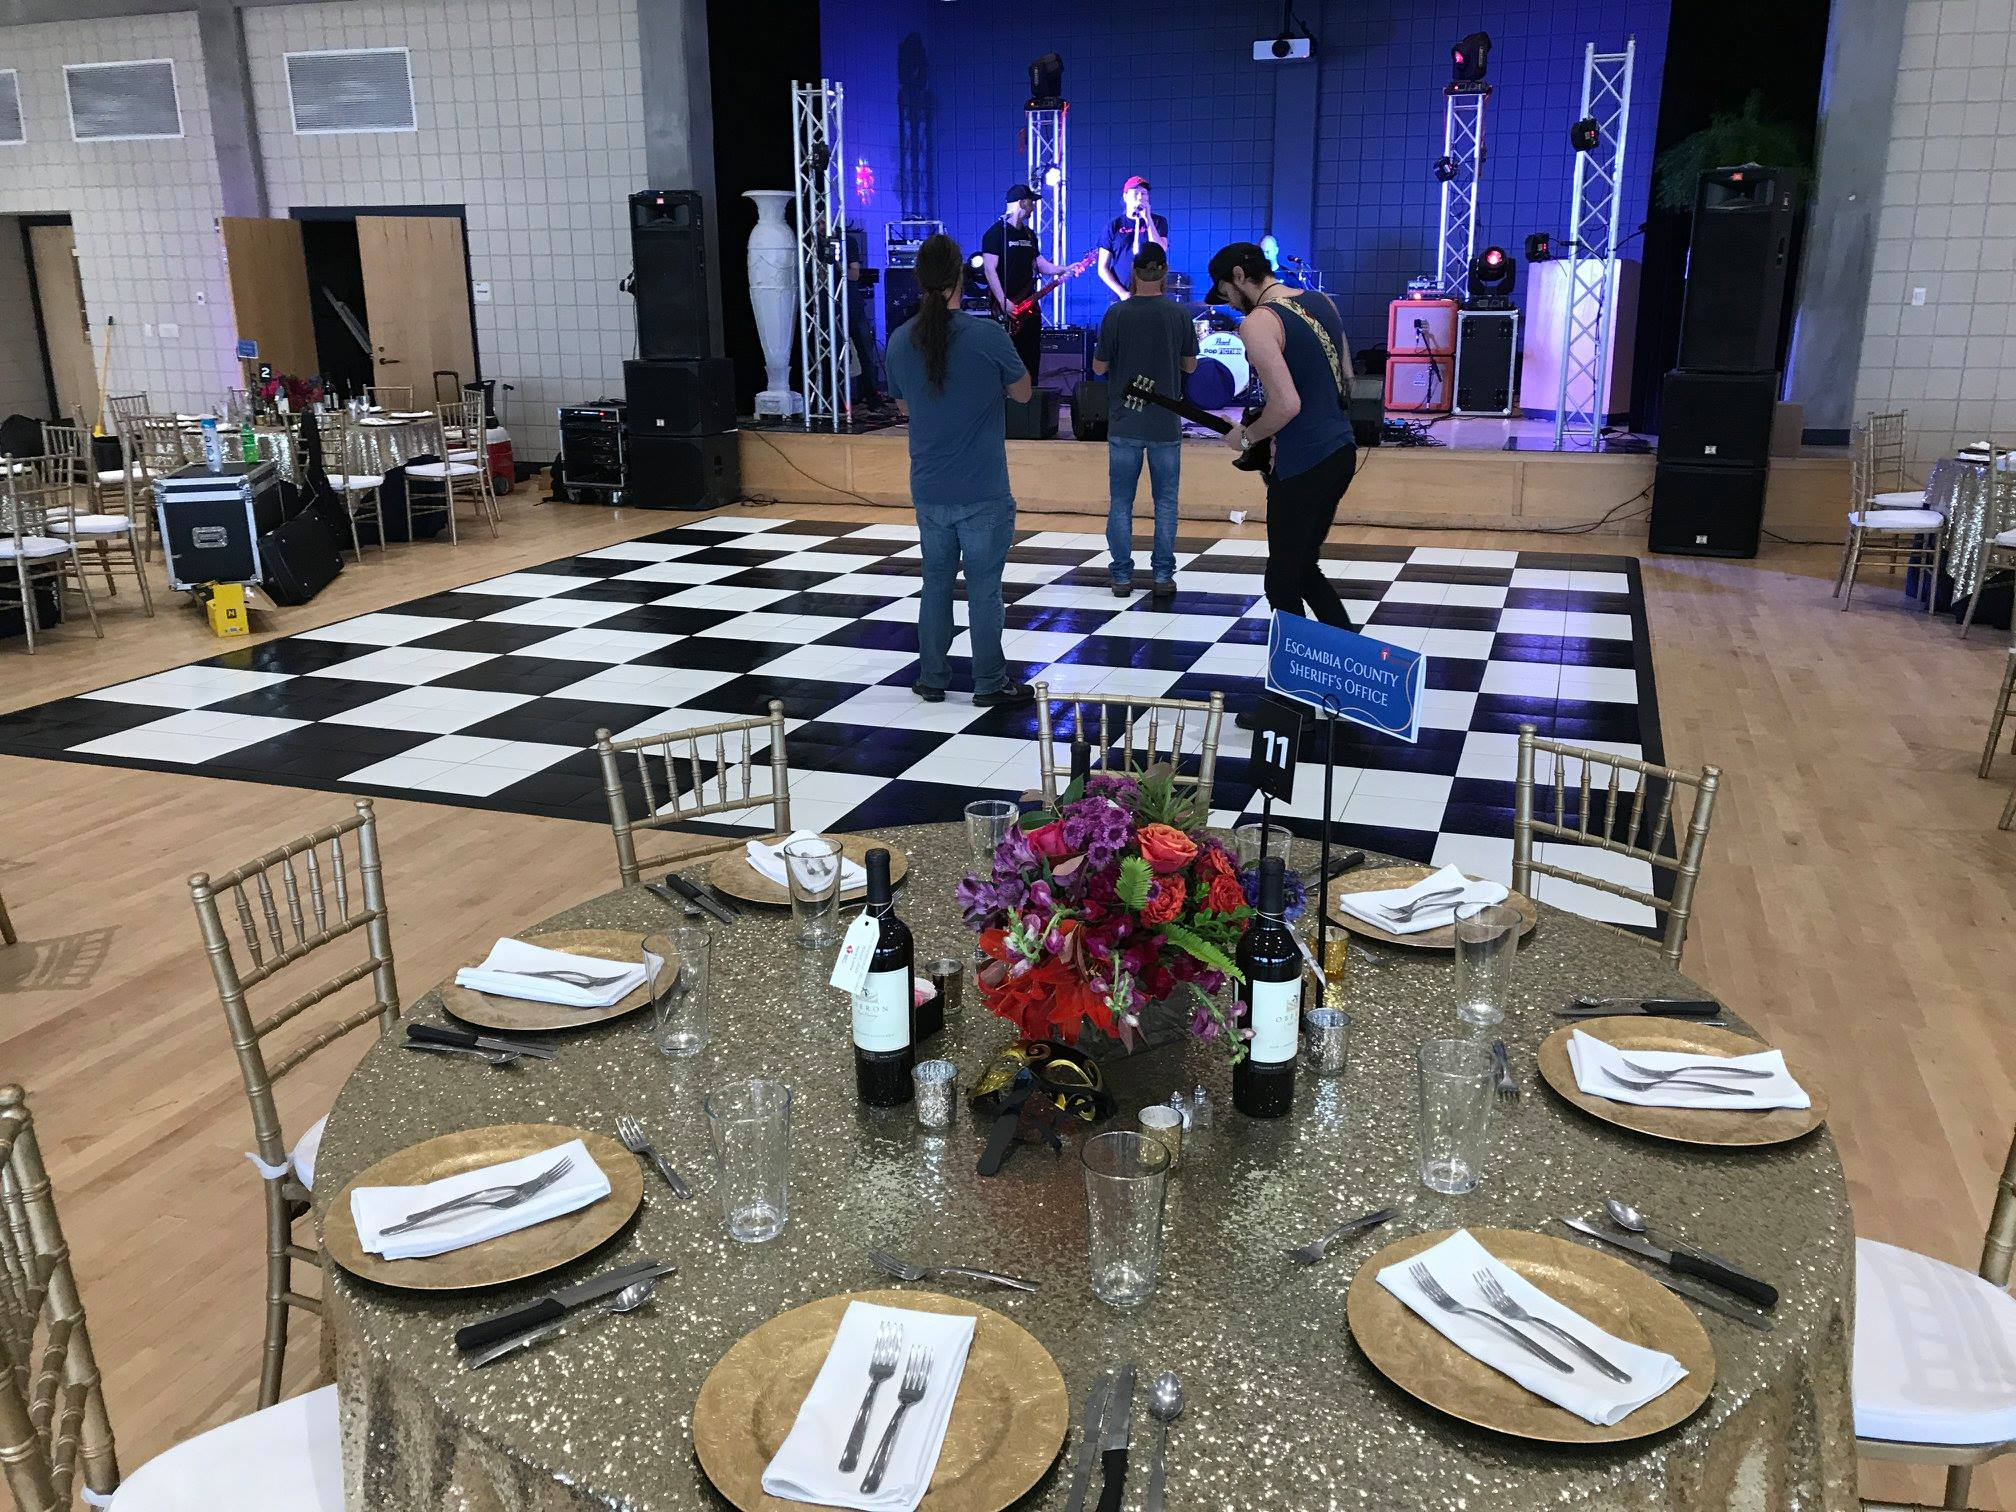 Black and White Slate style dance floor and band at this sparkling indoor event